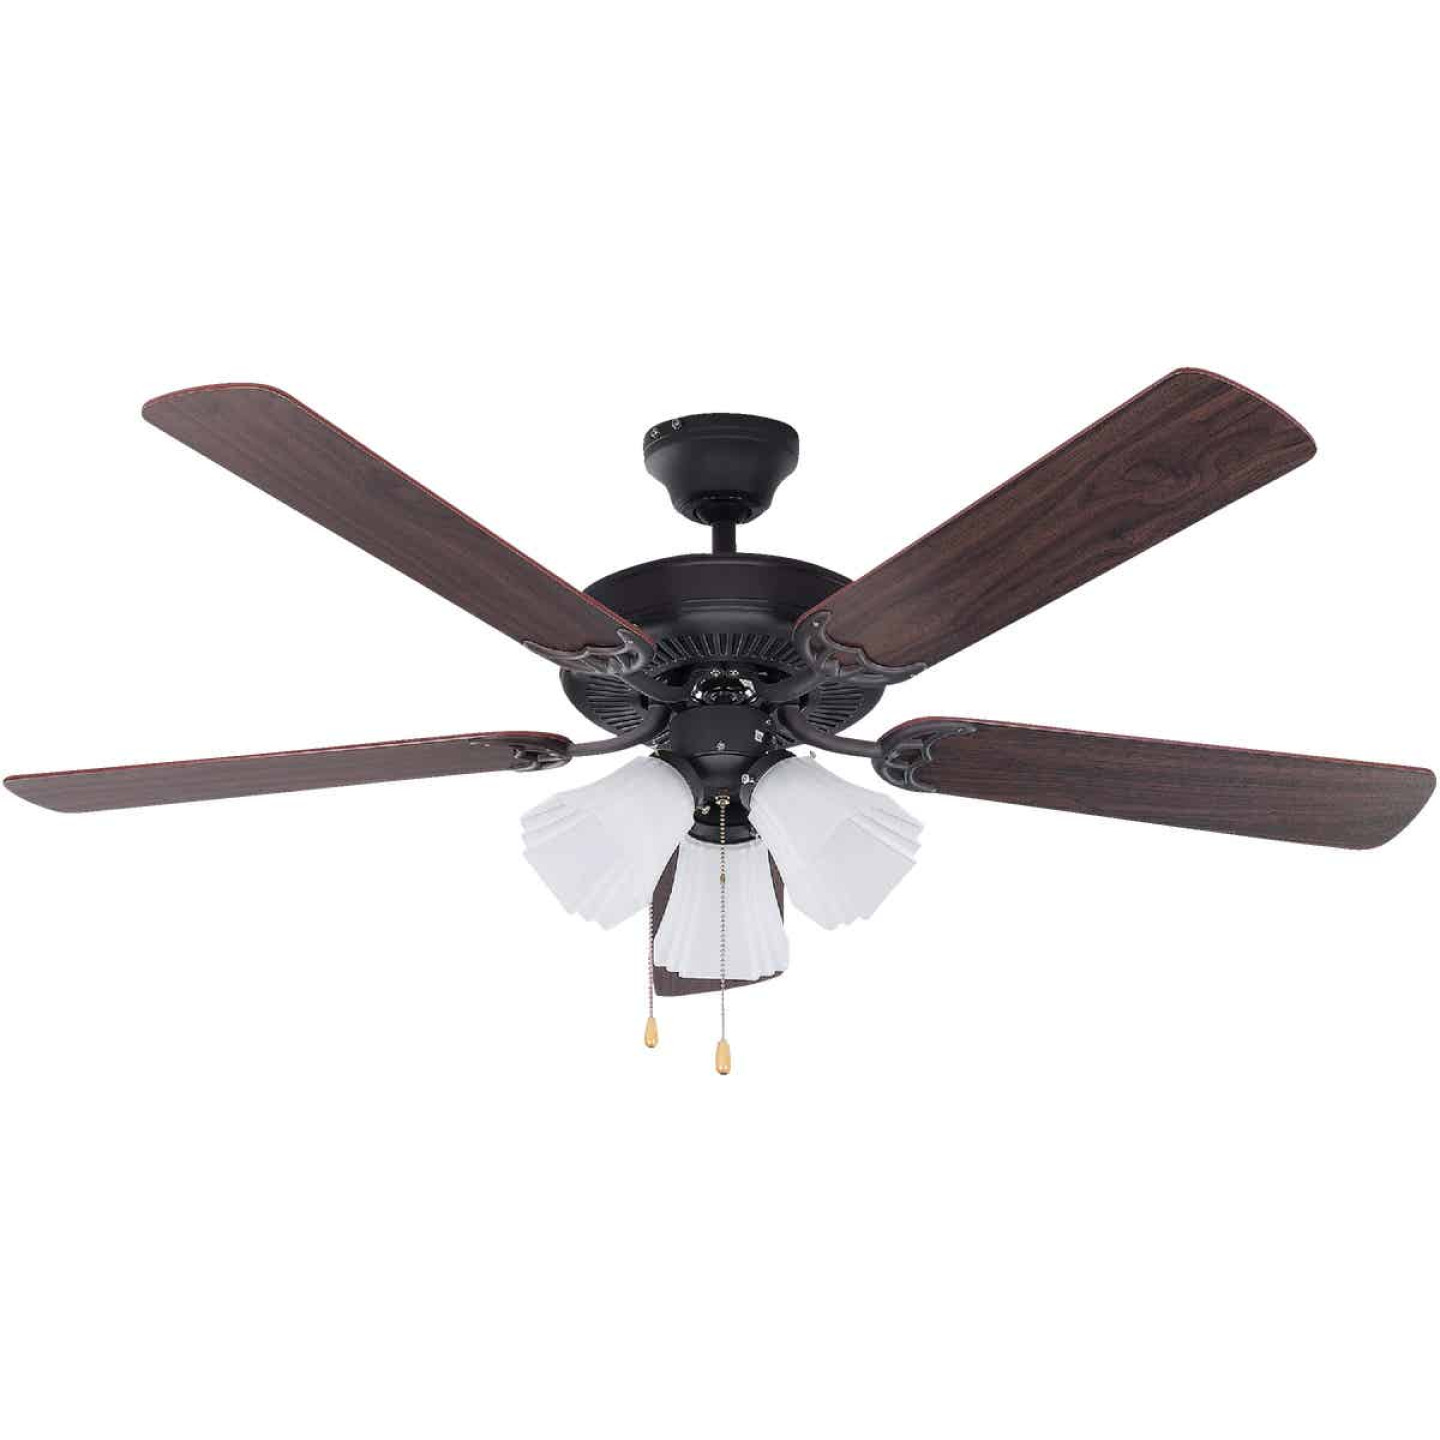 Home Impressions Sherwood 52 In. Oil Rubbed Bronze Ceiling Fan with Light Kit Image 1